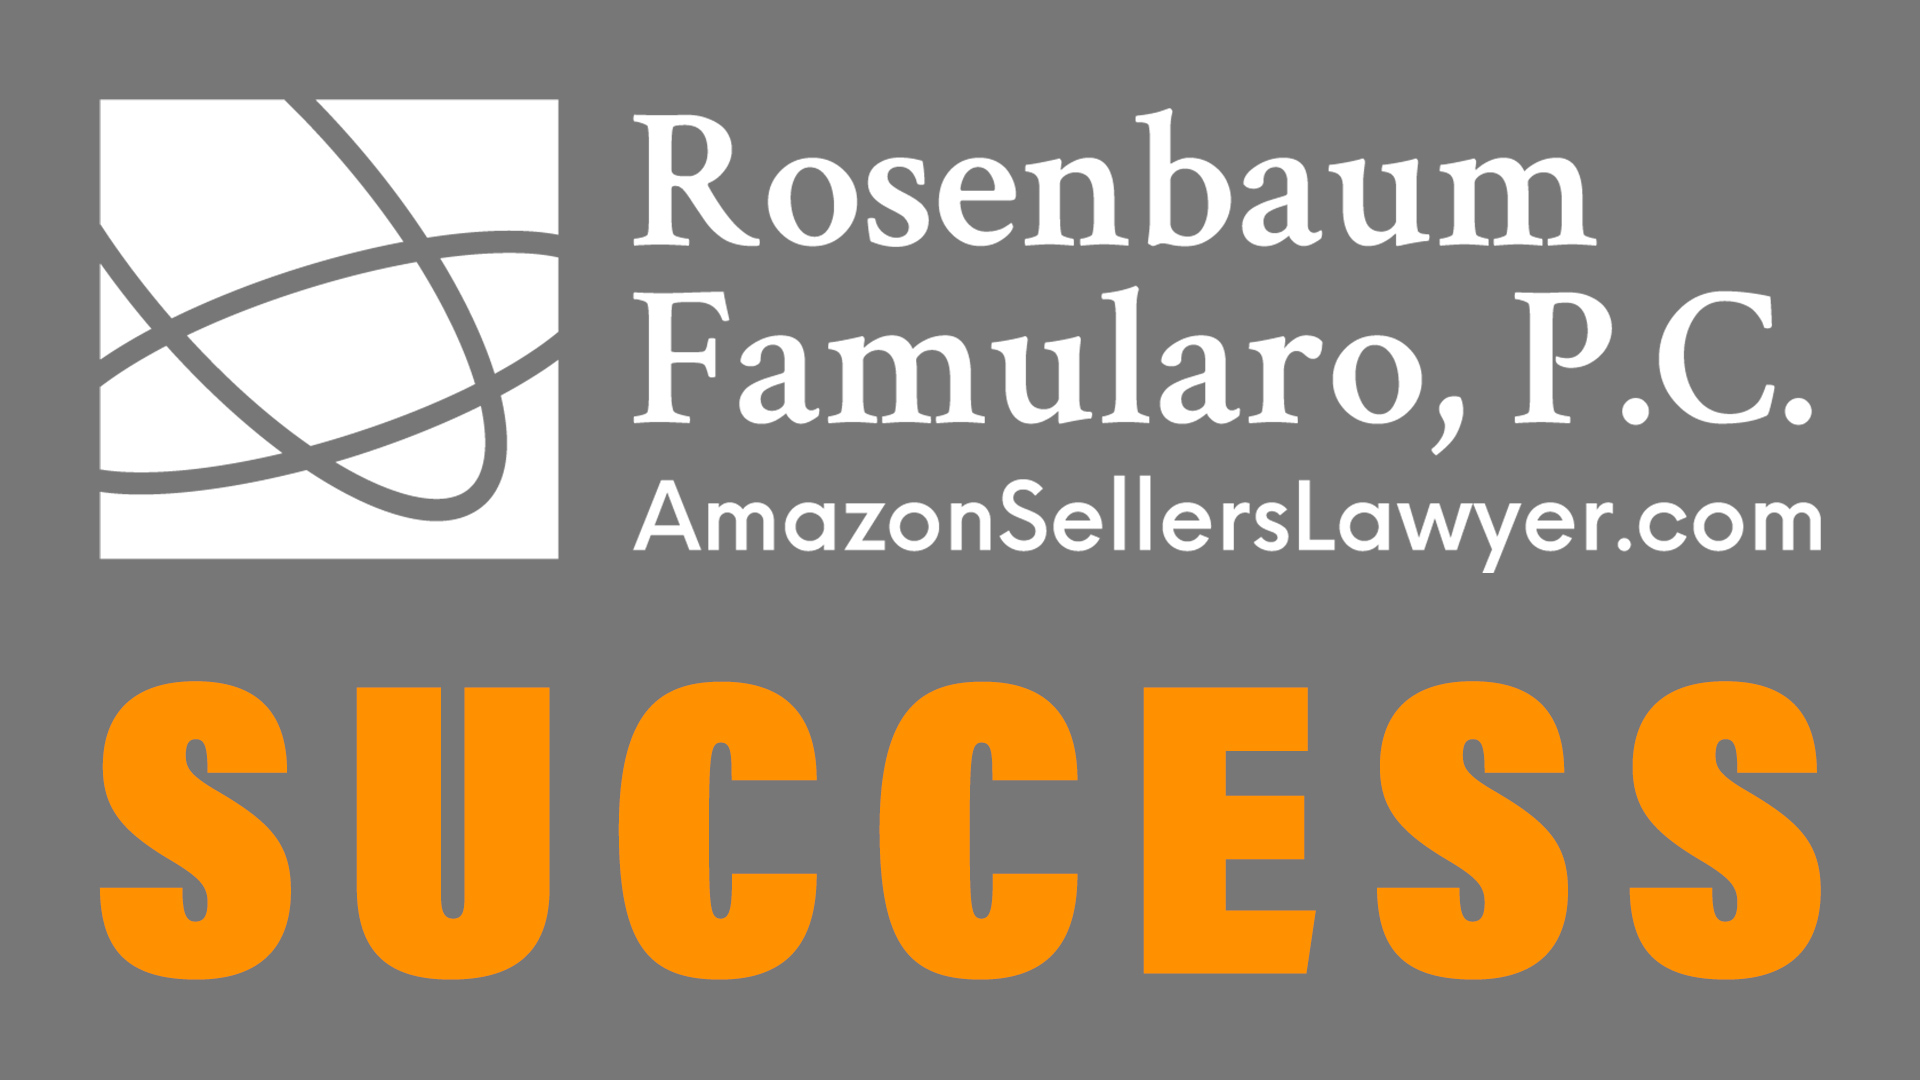 SUCCESS: Amazon seller price gouging suspension lifted with our help.